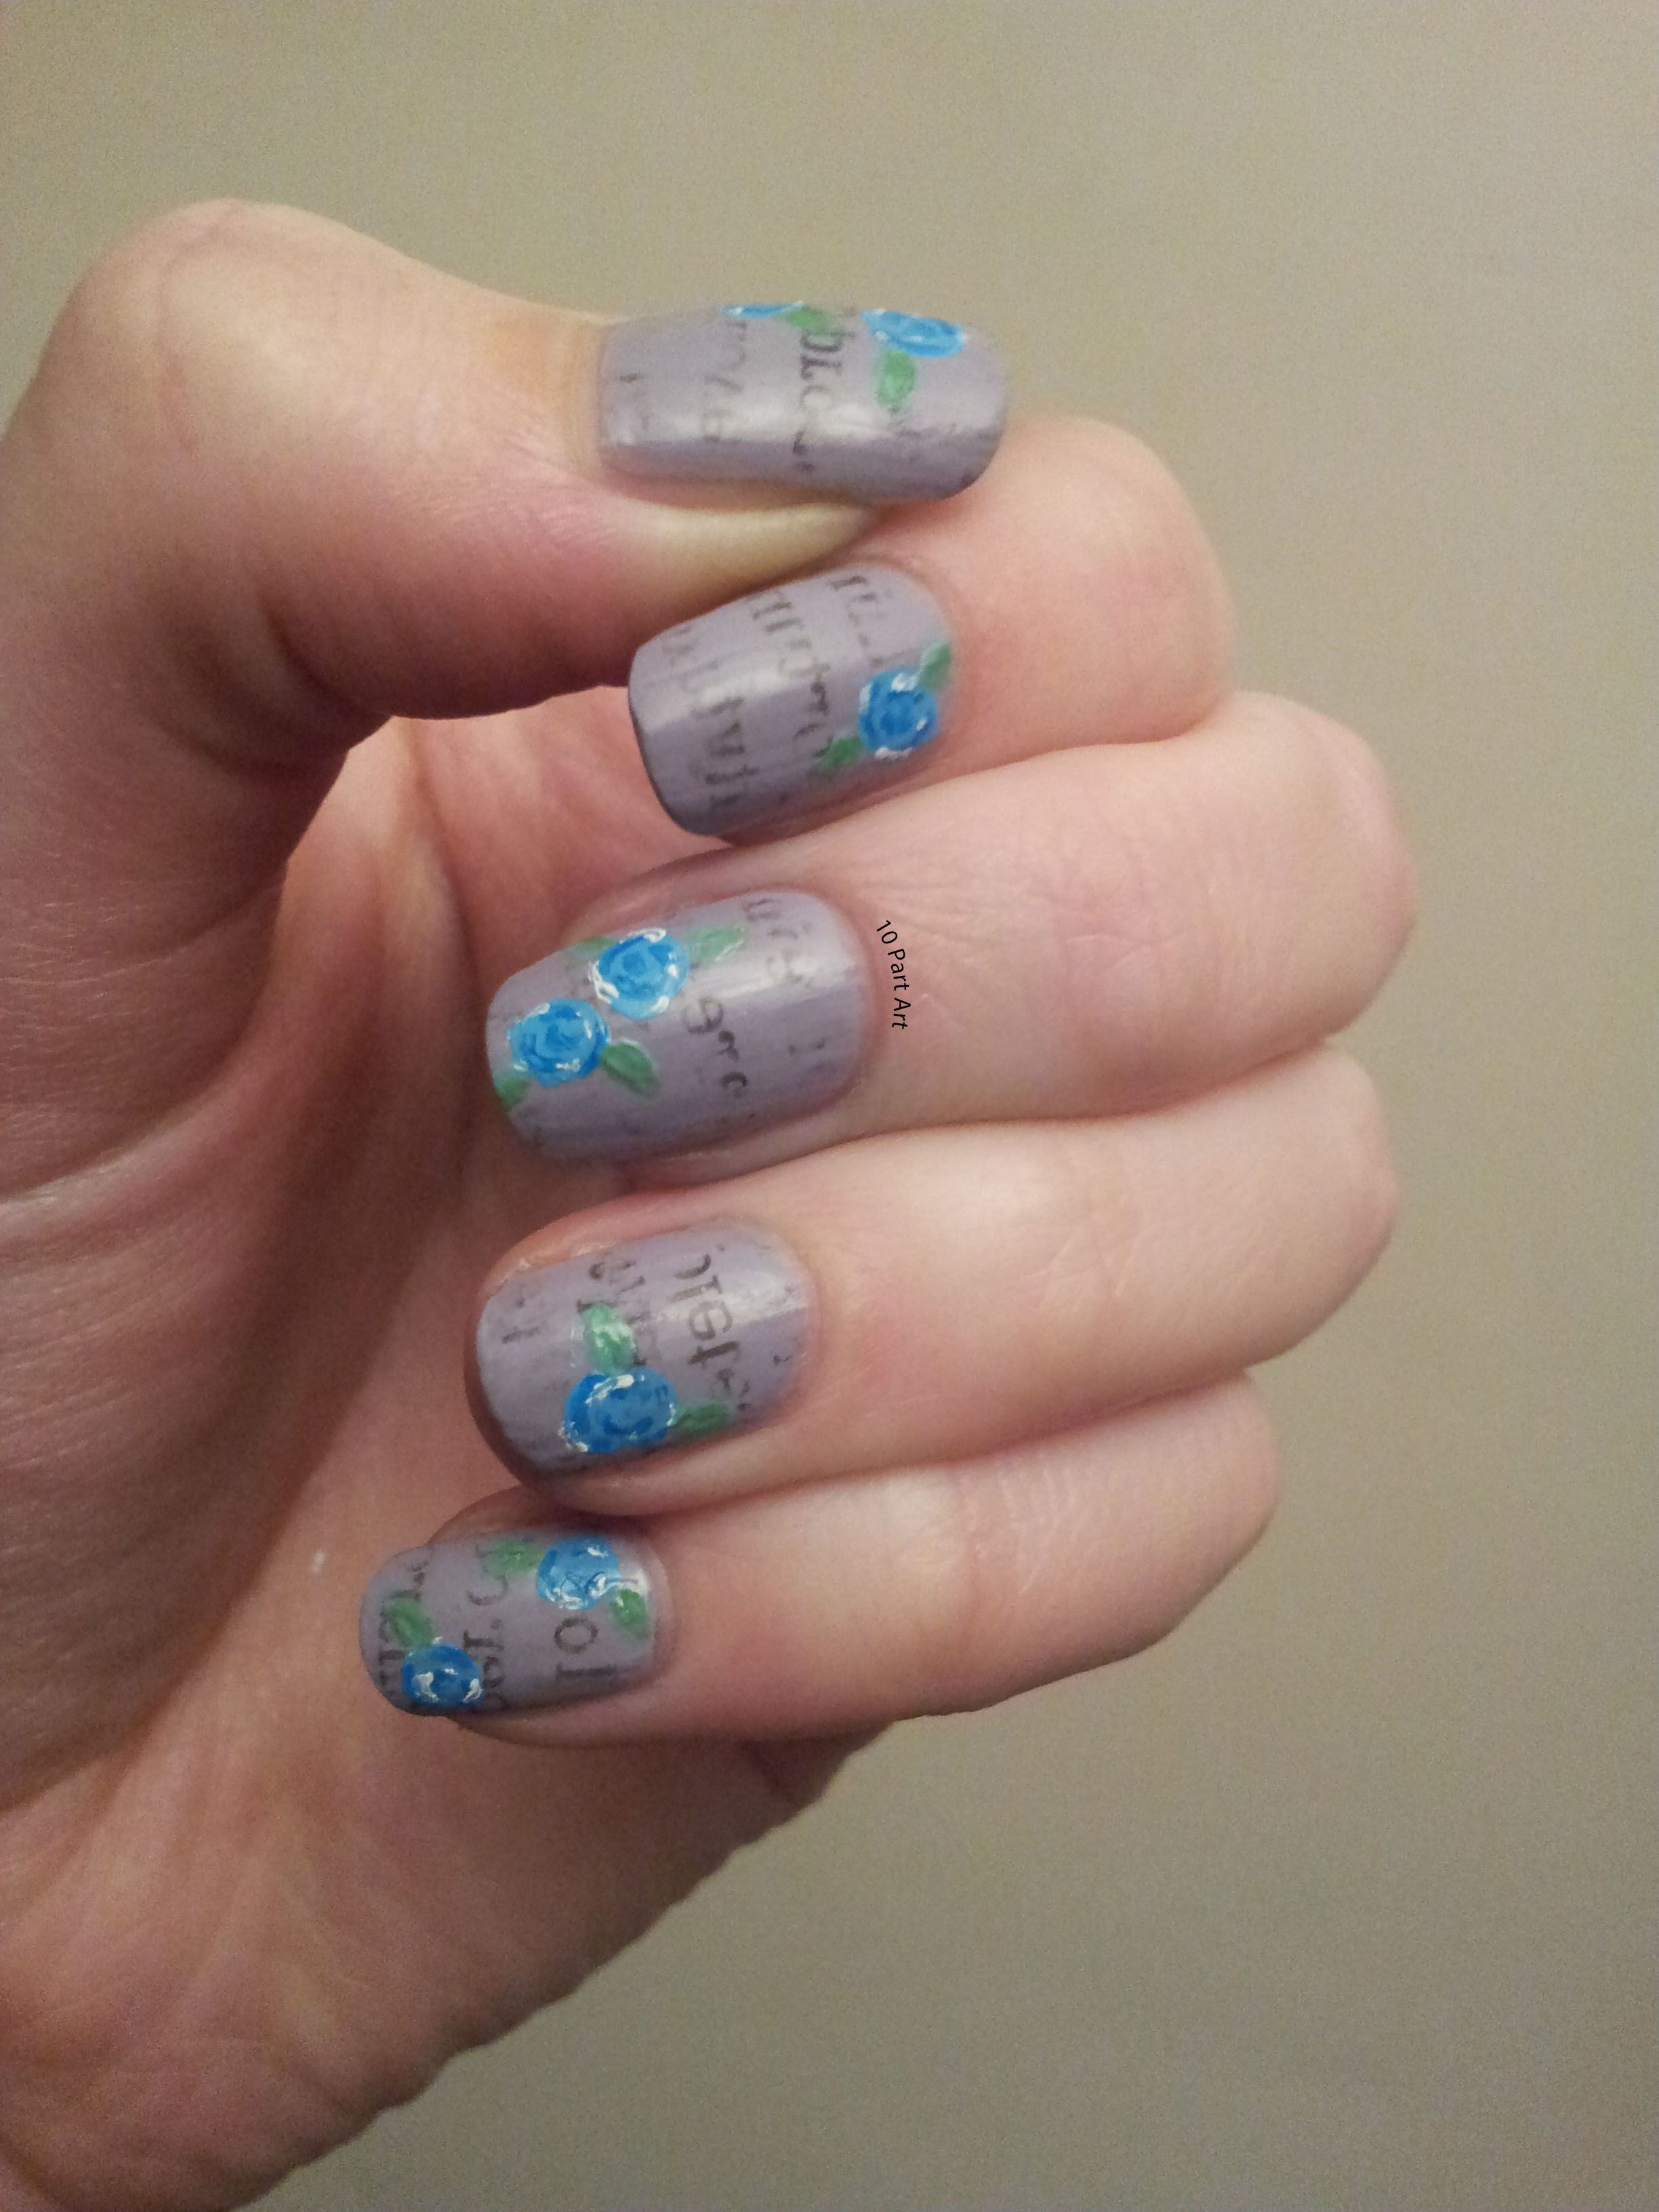 newspaper print nail art with flowers | My own nail art | Pinterest ...